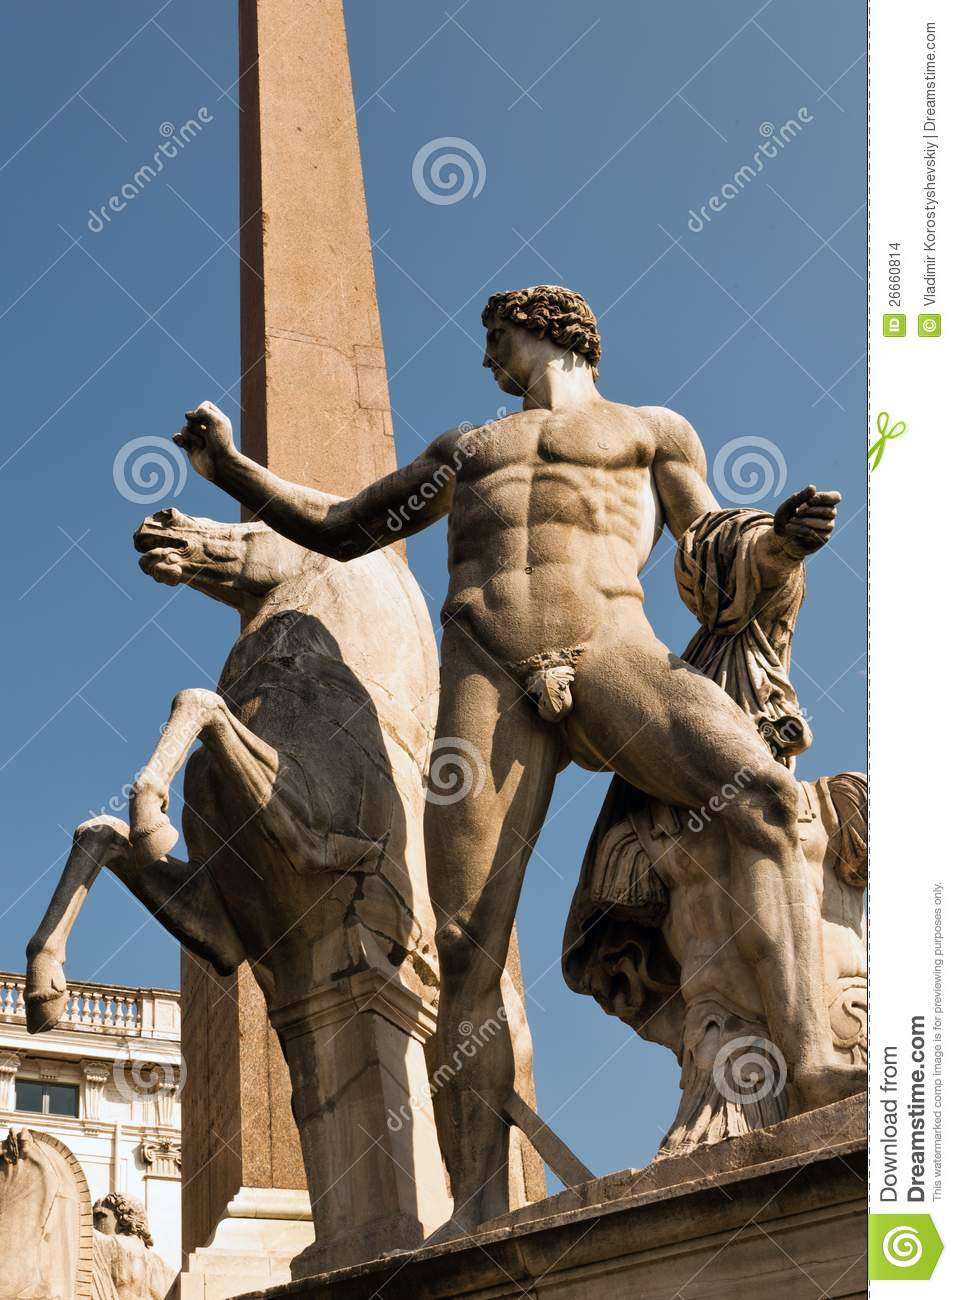 statues of castor and pollux stock images image 26660814. Black Bedroom Furniture Sets. Home Design Ideas